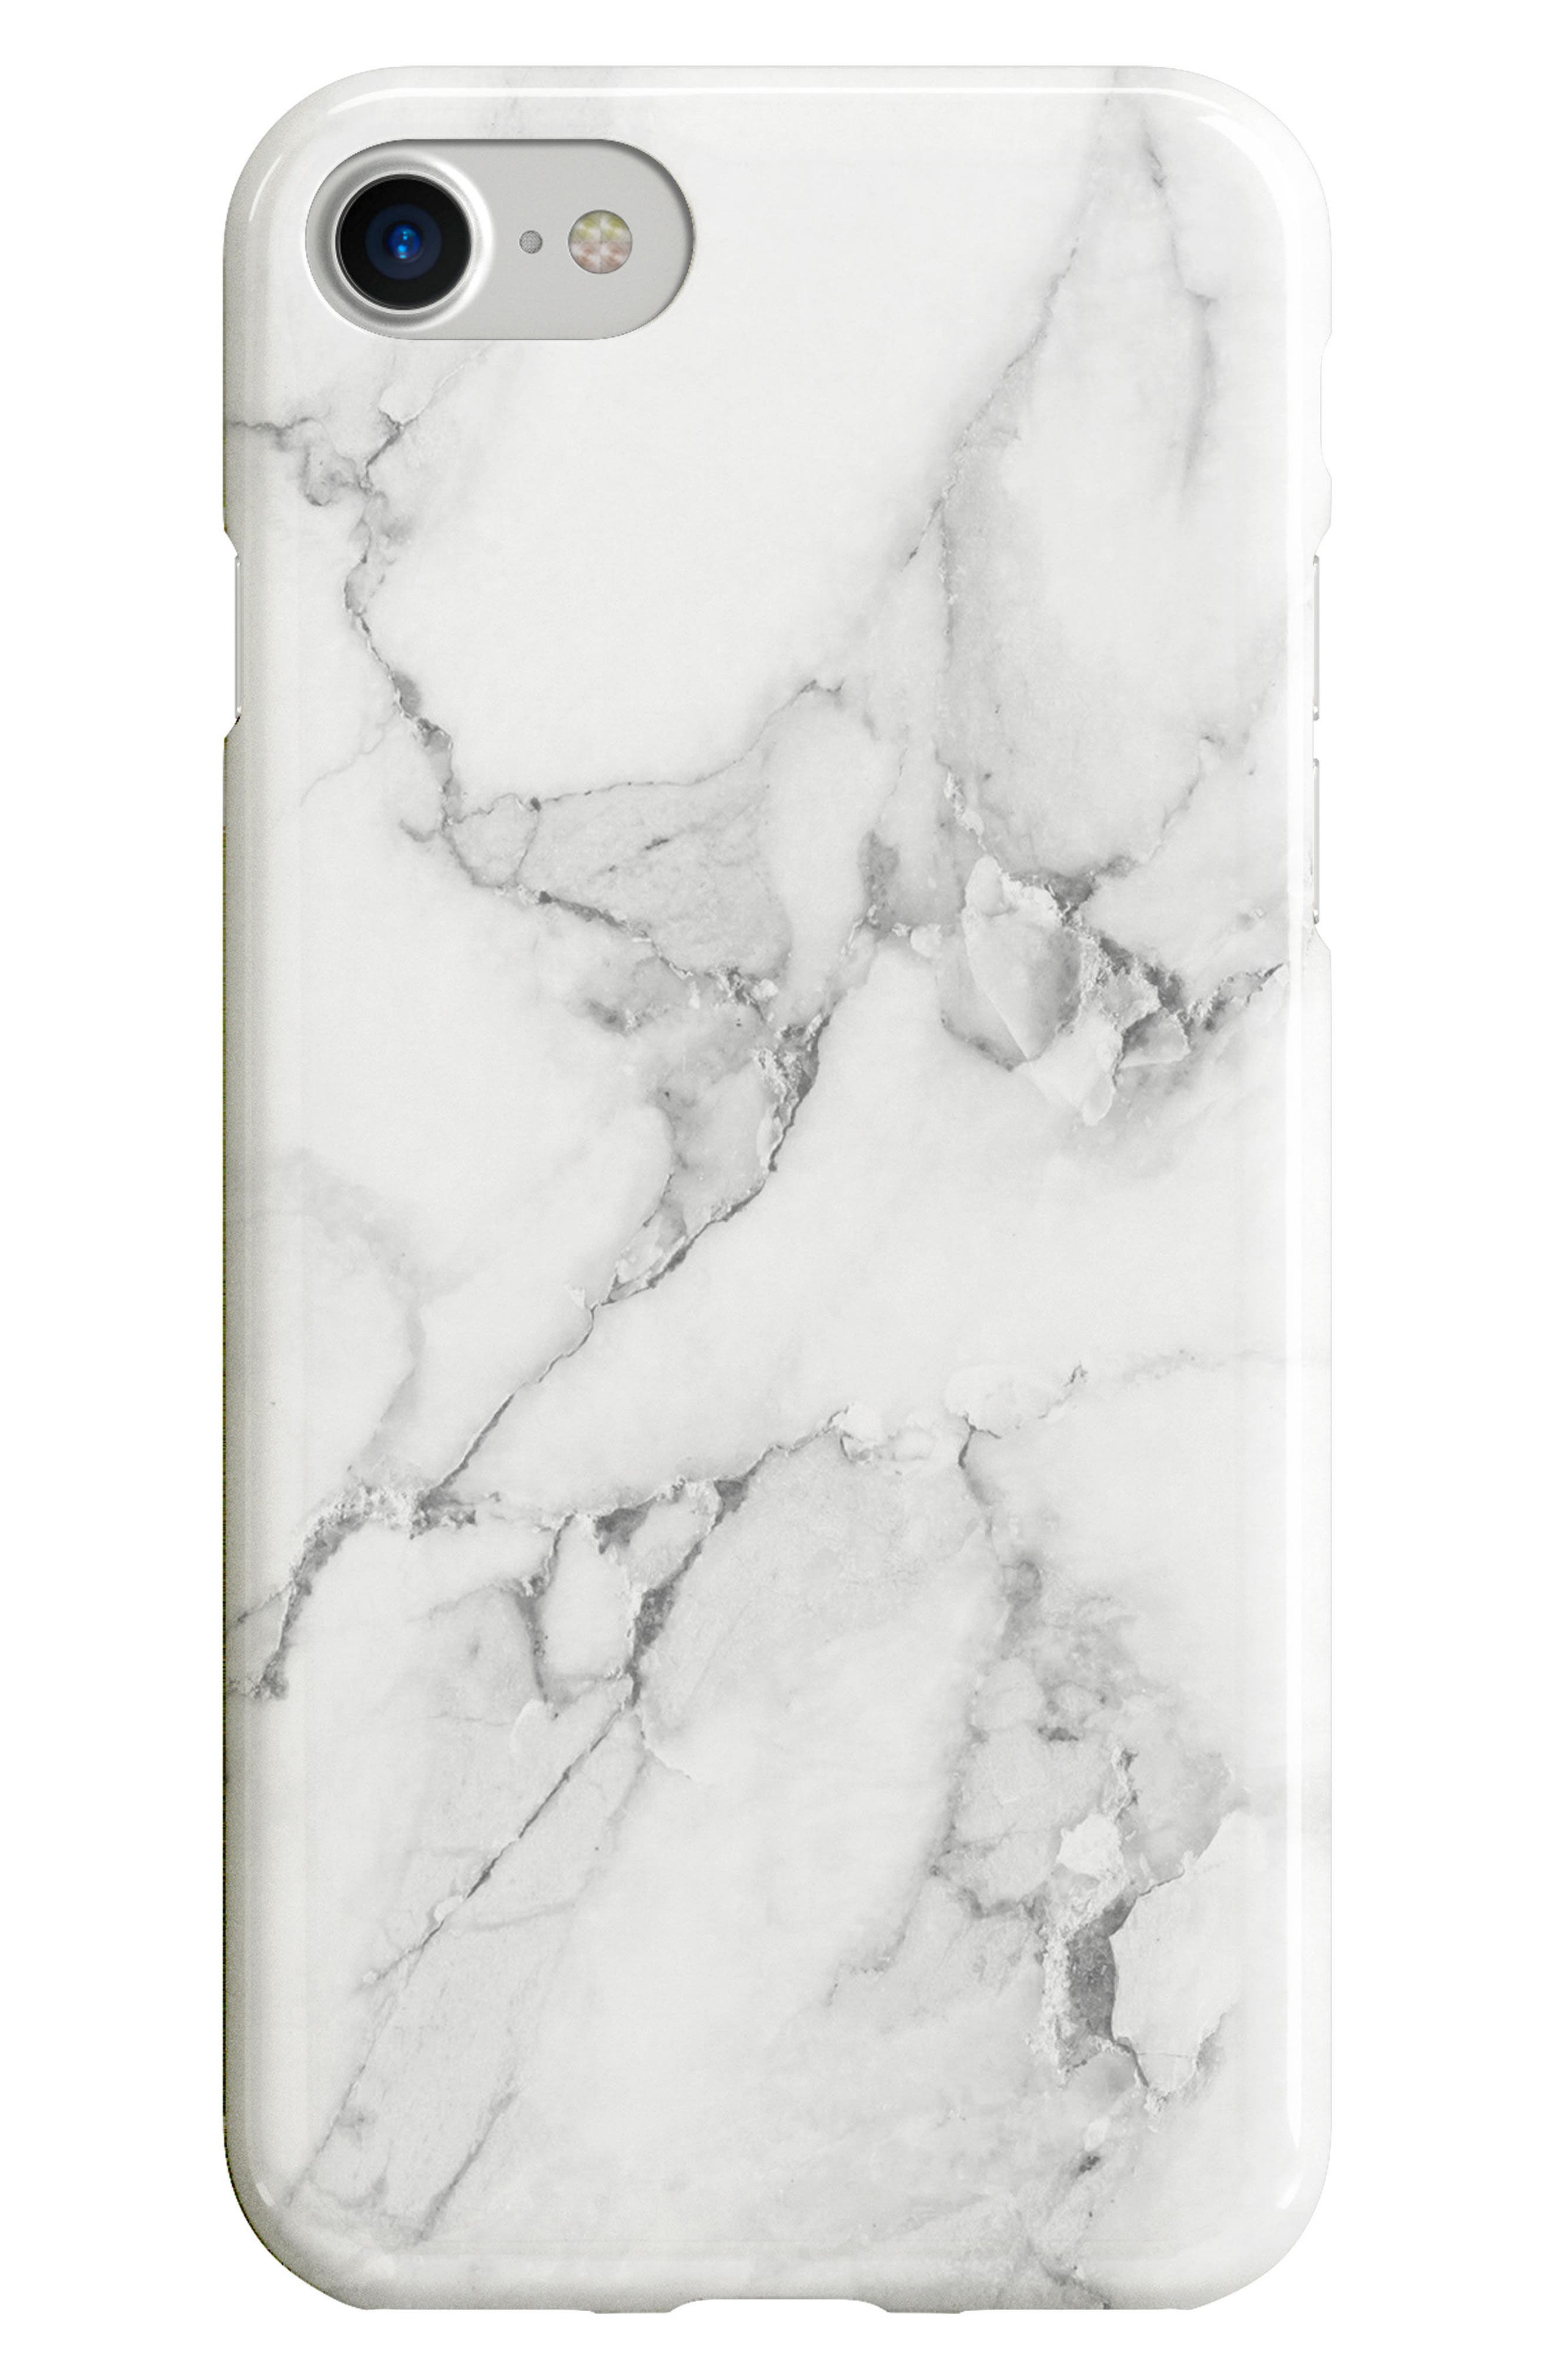 White Marble iPhone 6/6s/7/8 & 6/6s/7/8 Plus Case,                             Main thumbnail 1, color,                             MARBLE